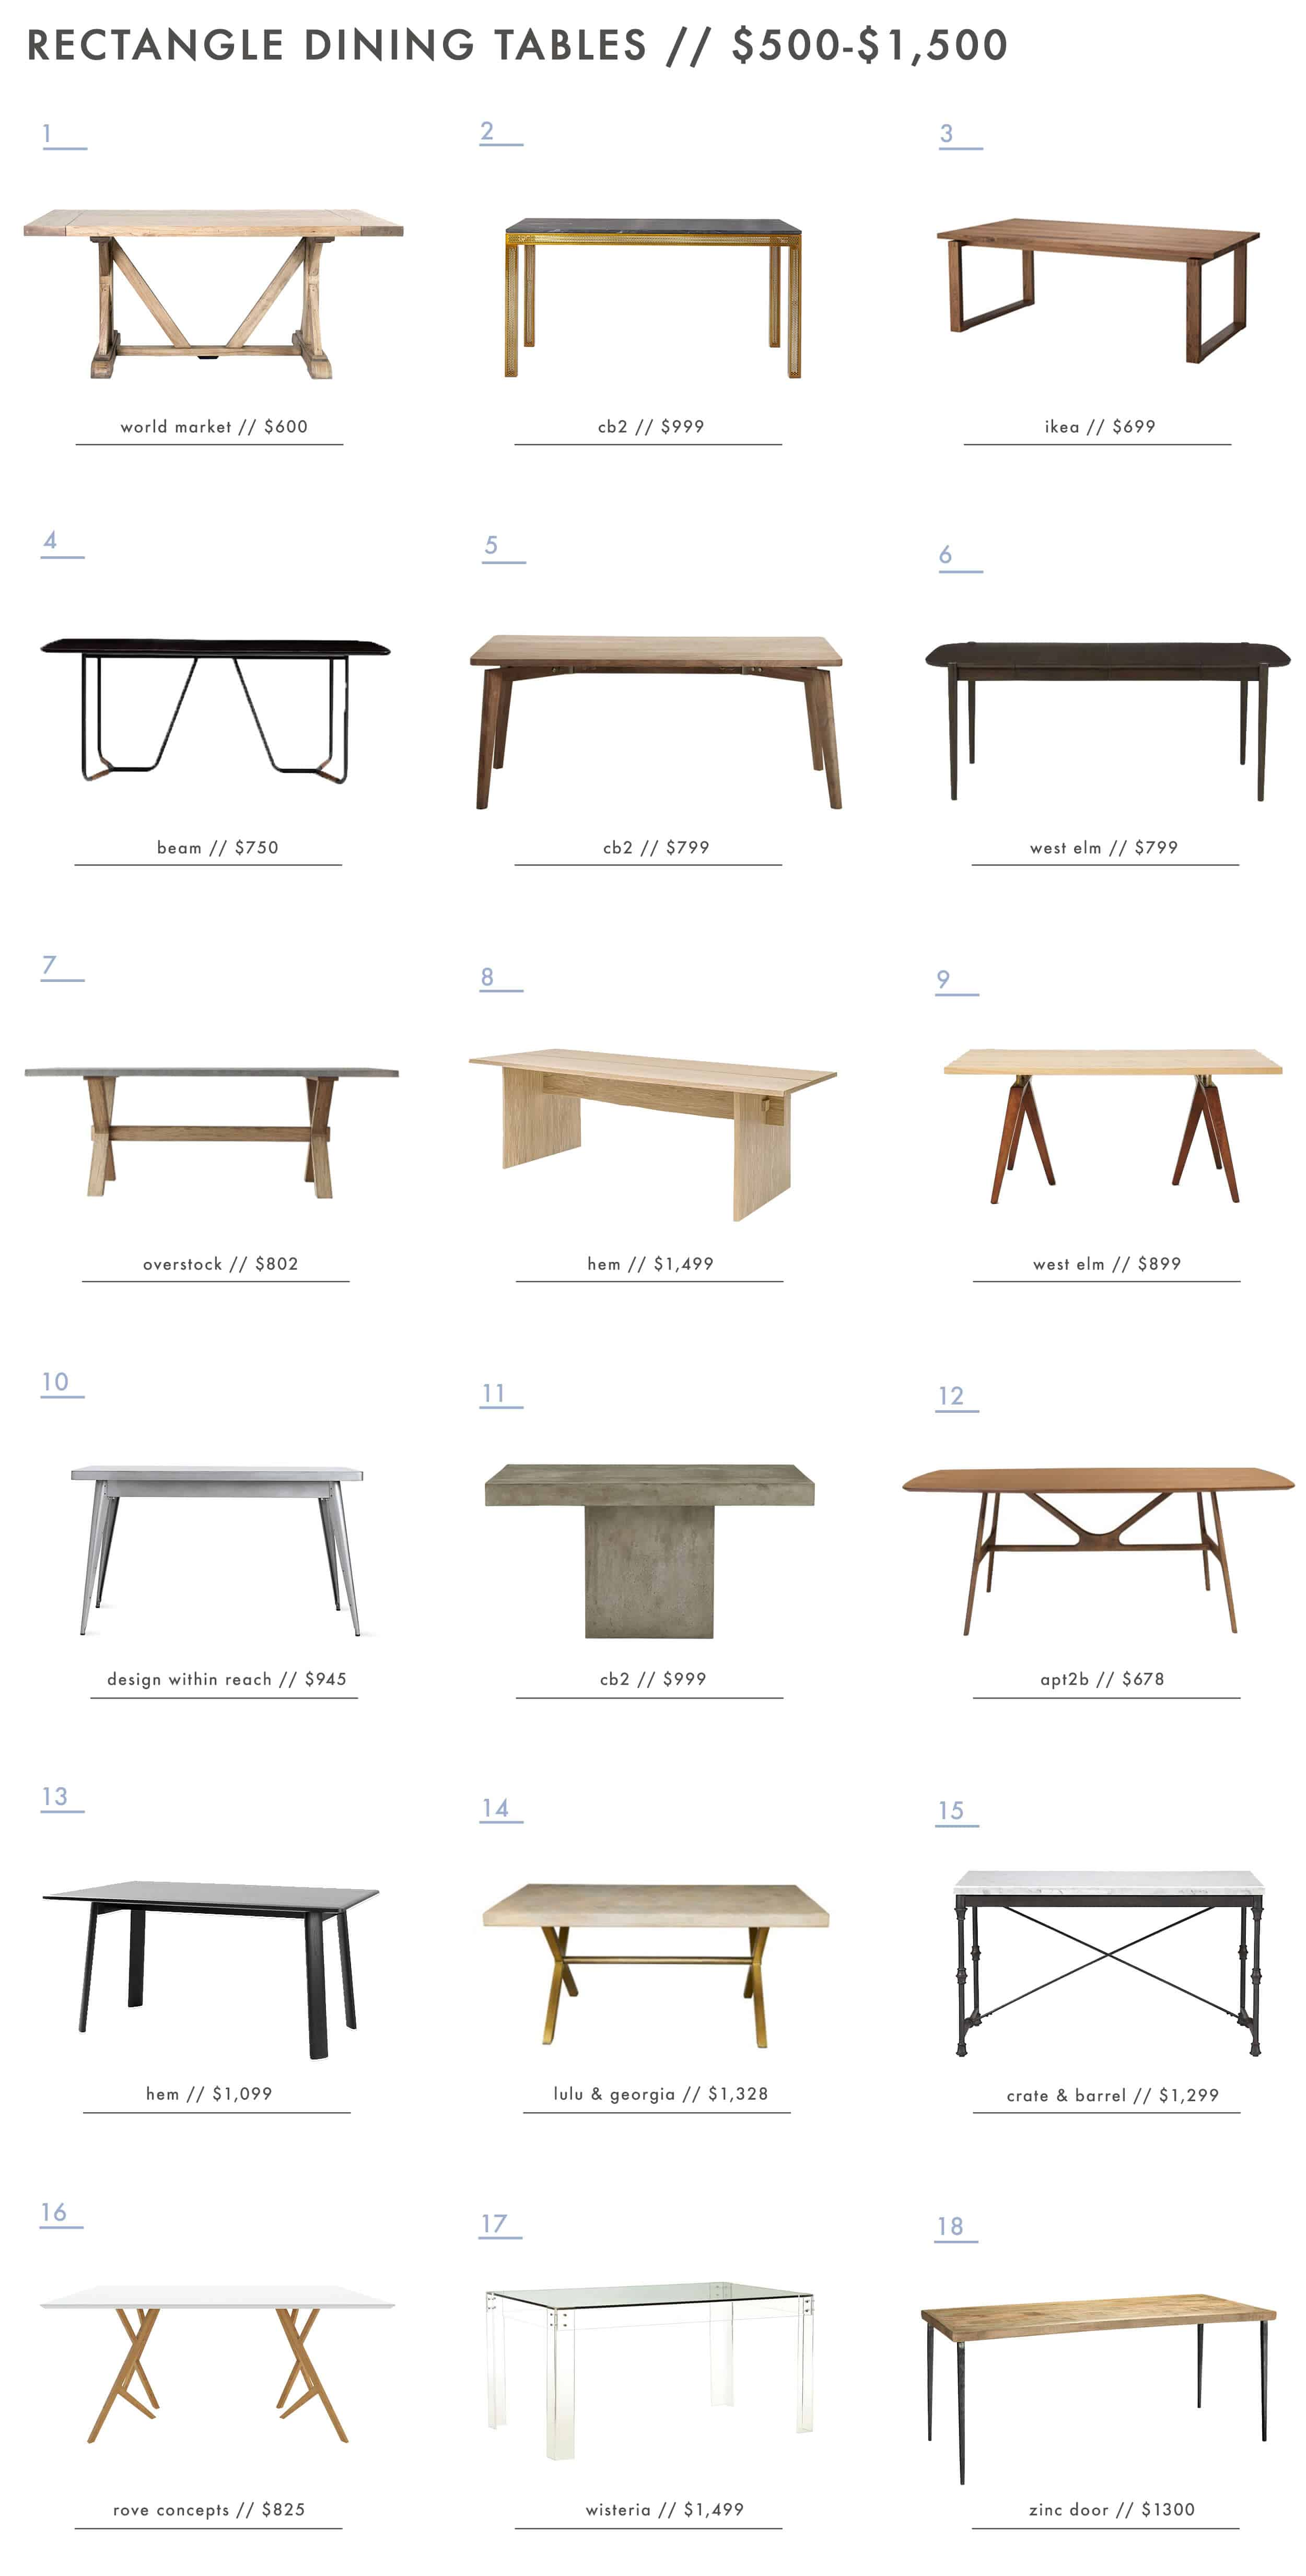 Emily Henderson Dining Tables Dining Room Rectangle Dining Tables Under 500 To 1500